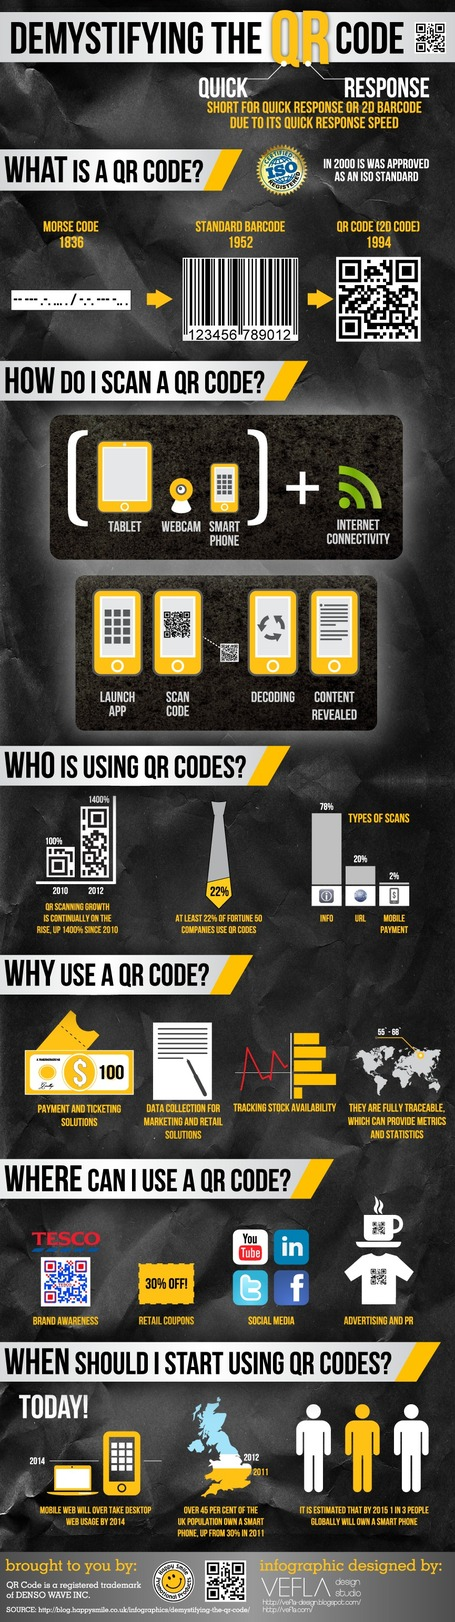 Demystifying The QR Code | formation 2.0 | Scoop.it